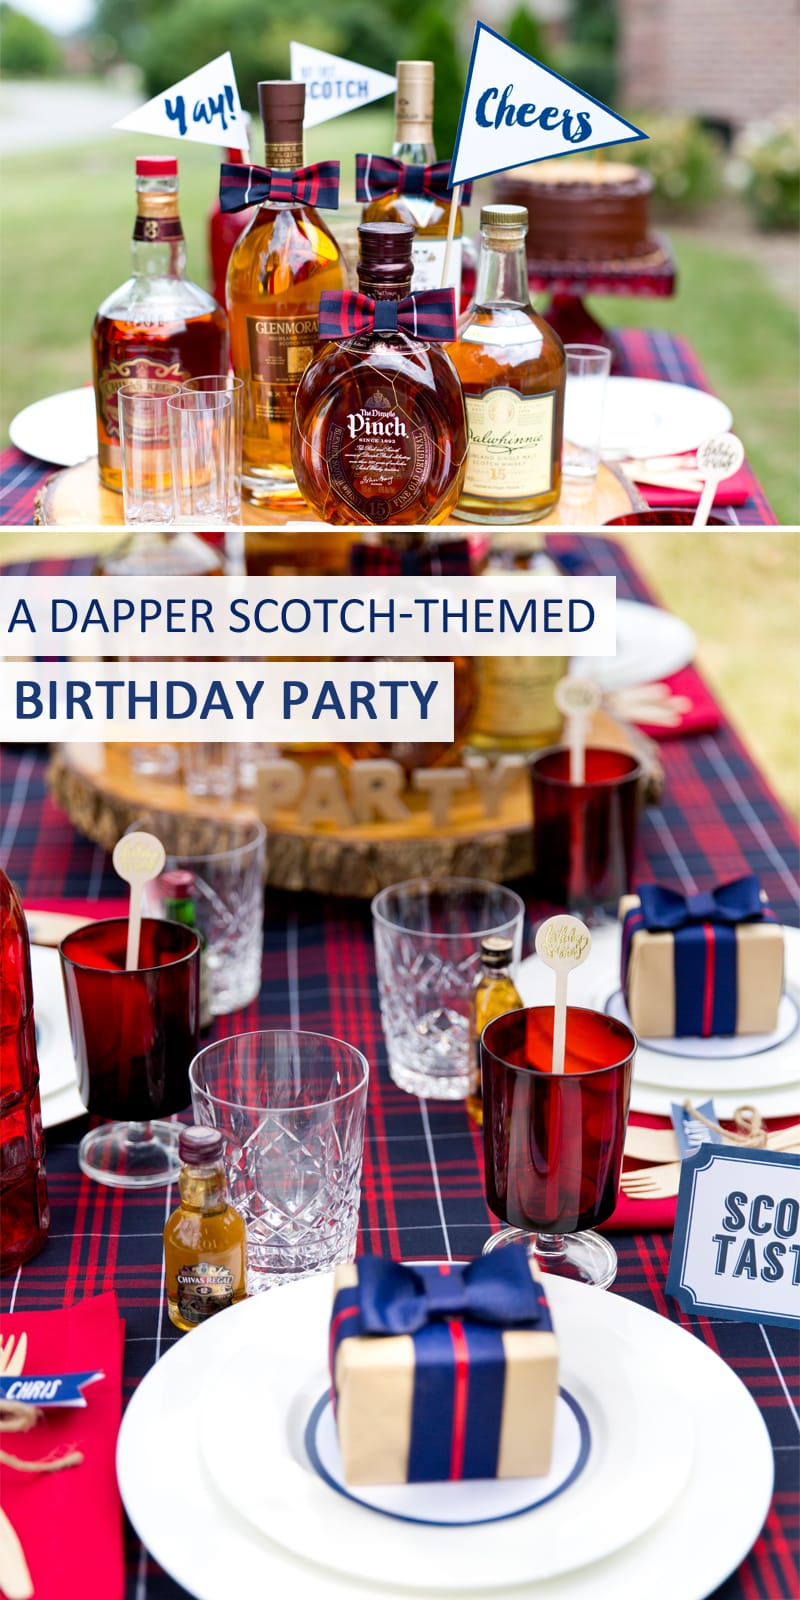 Put on your best pastels & get all spruced up for this {Dapper Style} Little Man First Birthday! Ernest of Bespoke Manila paired chic decor with a fresh palette of blues & yellows to tie all the fun details of this party together perfectly.